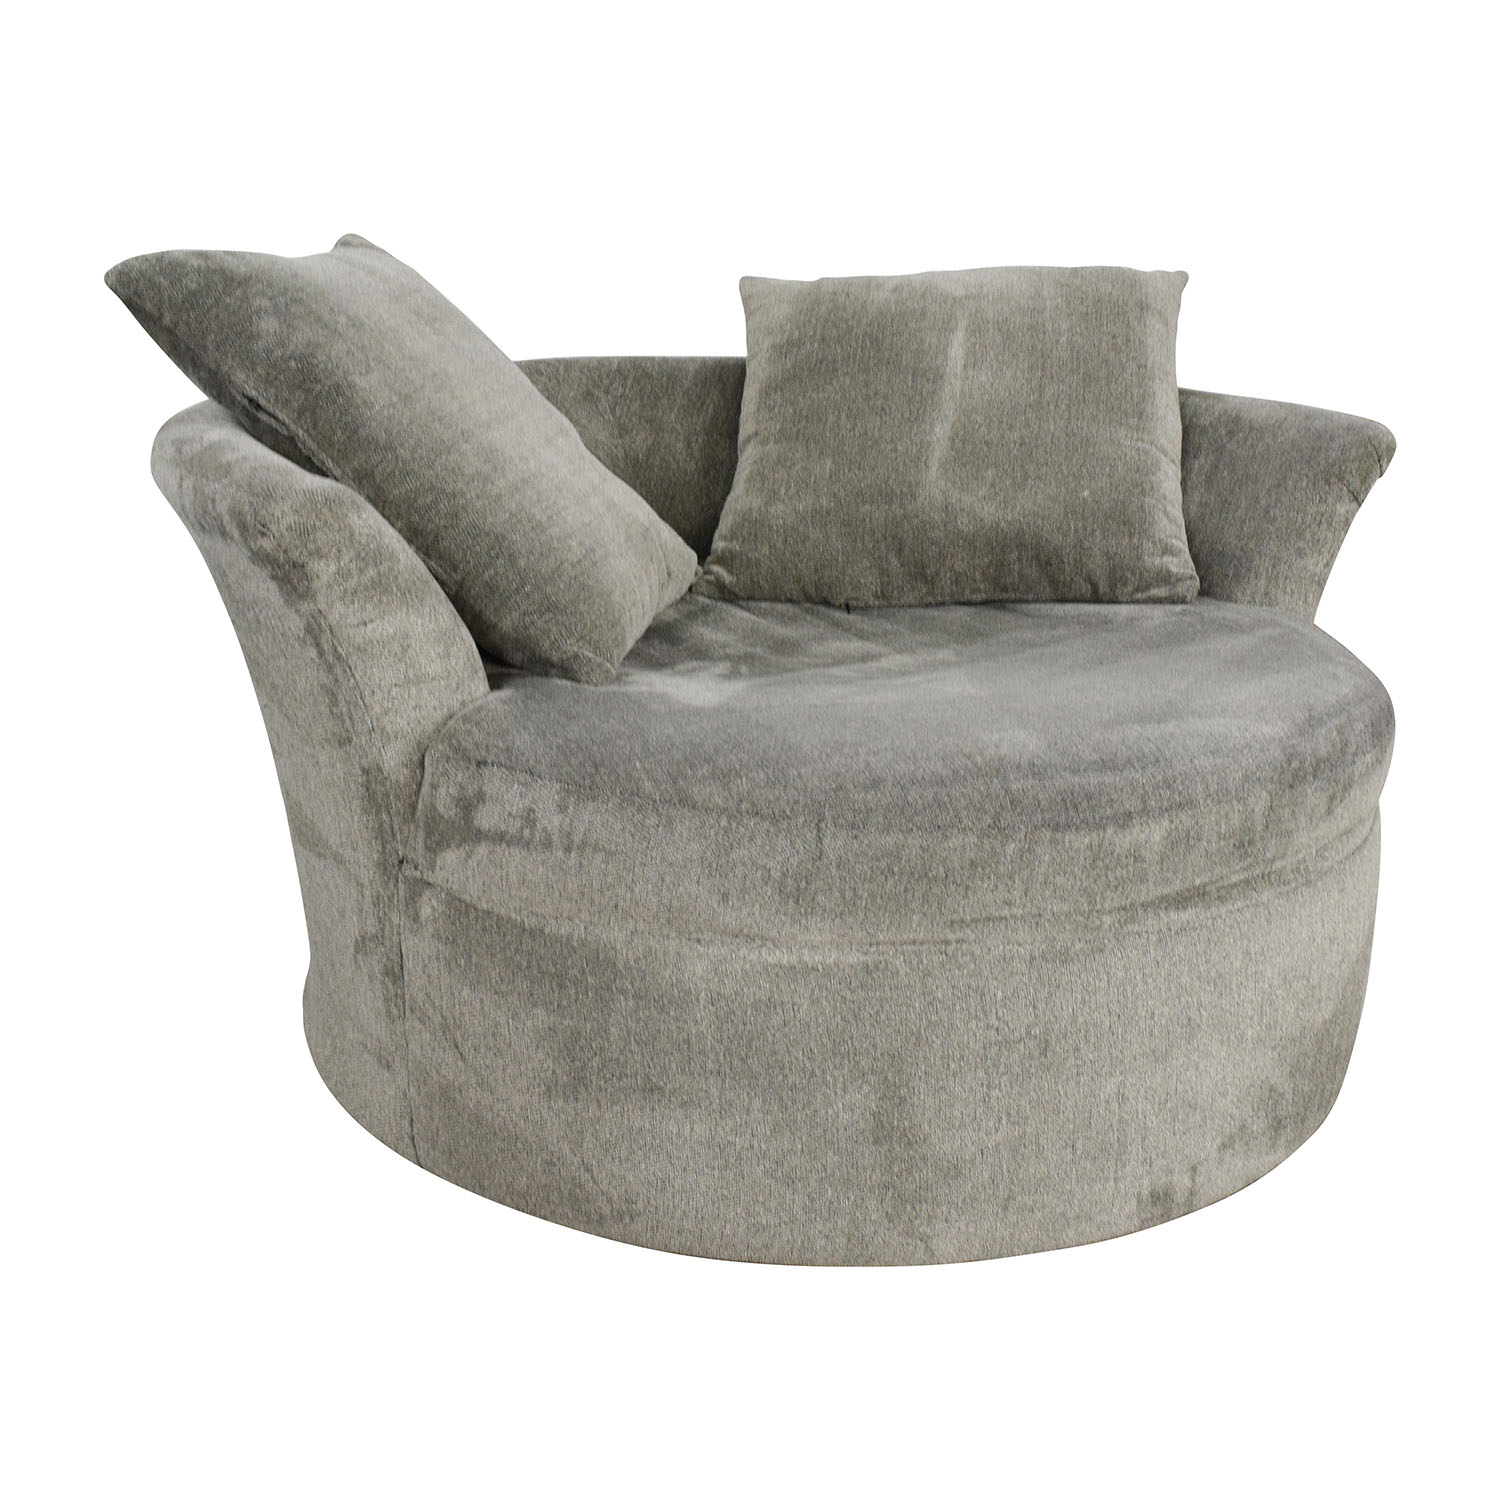 Circular Loveseat Sofa Round Swivel Loveseat Ideas For Updating Living Room And Patio Thesofa